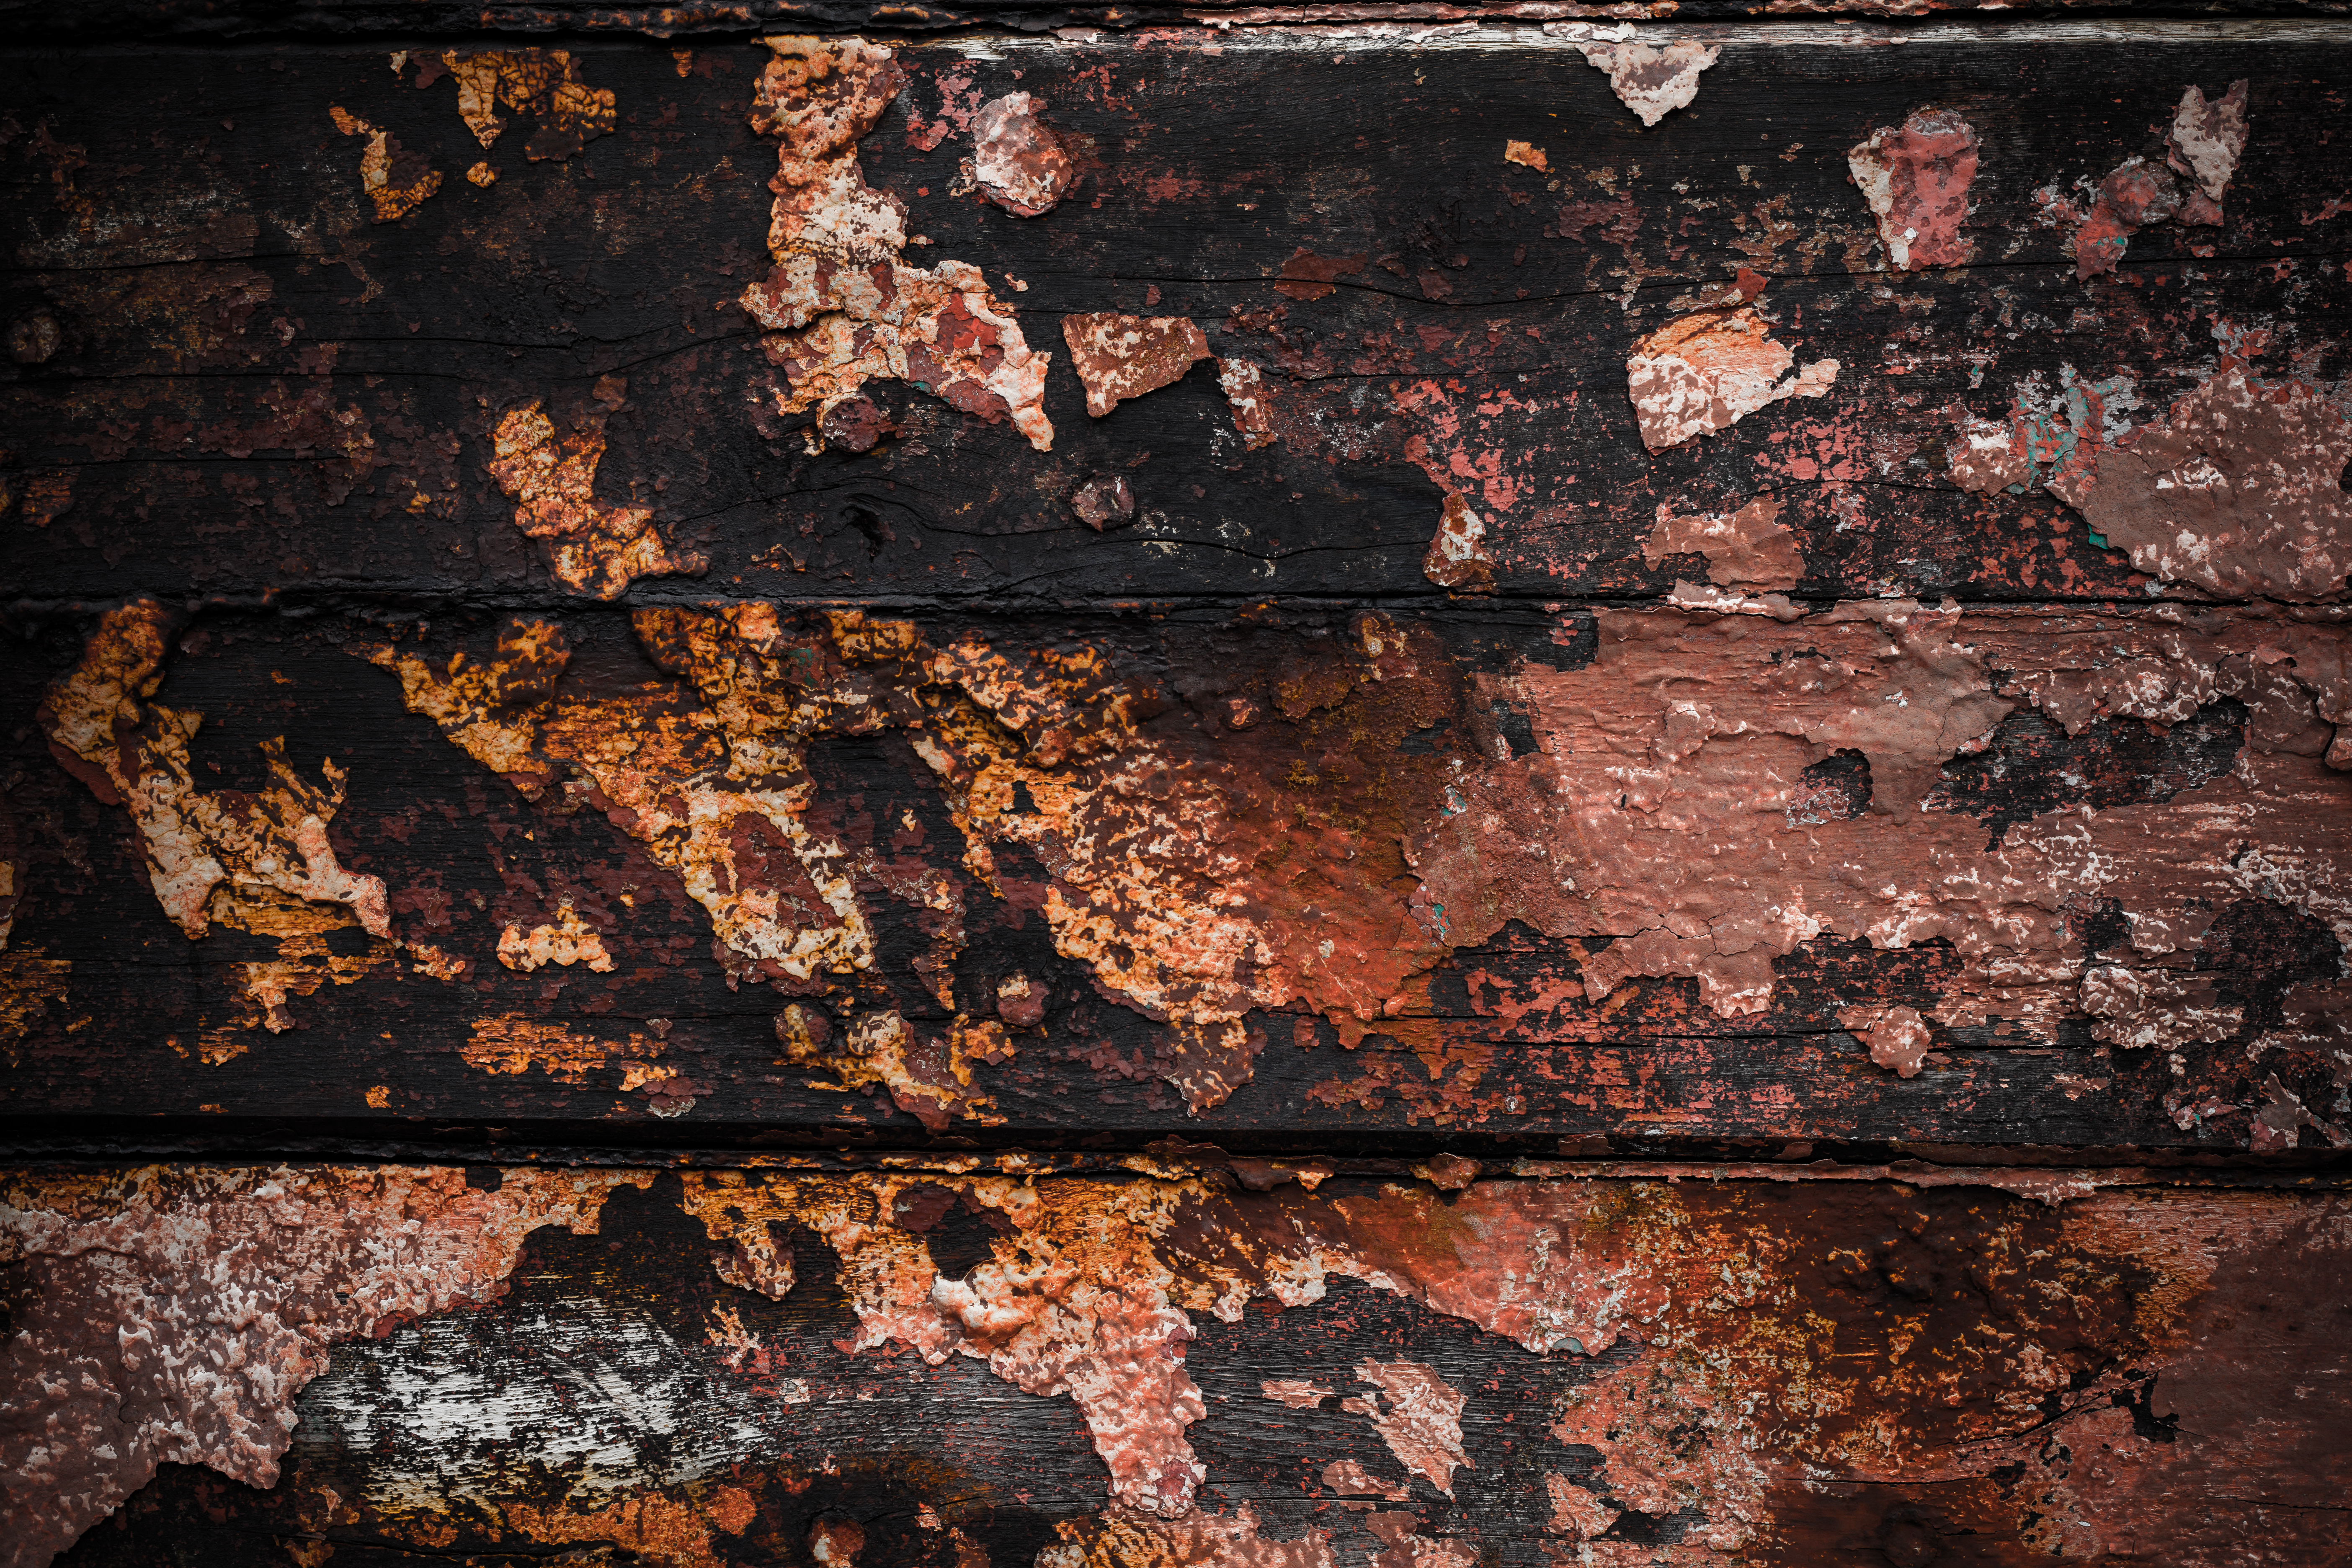 Grunge Wood with Peeled Paint, Damaged, Dark, Dirt, Gritty, HQ Photo